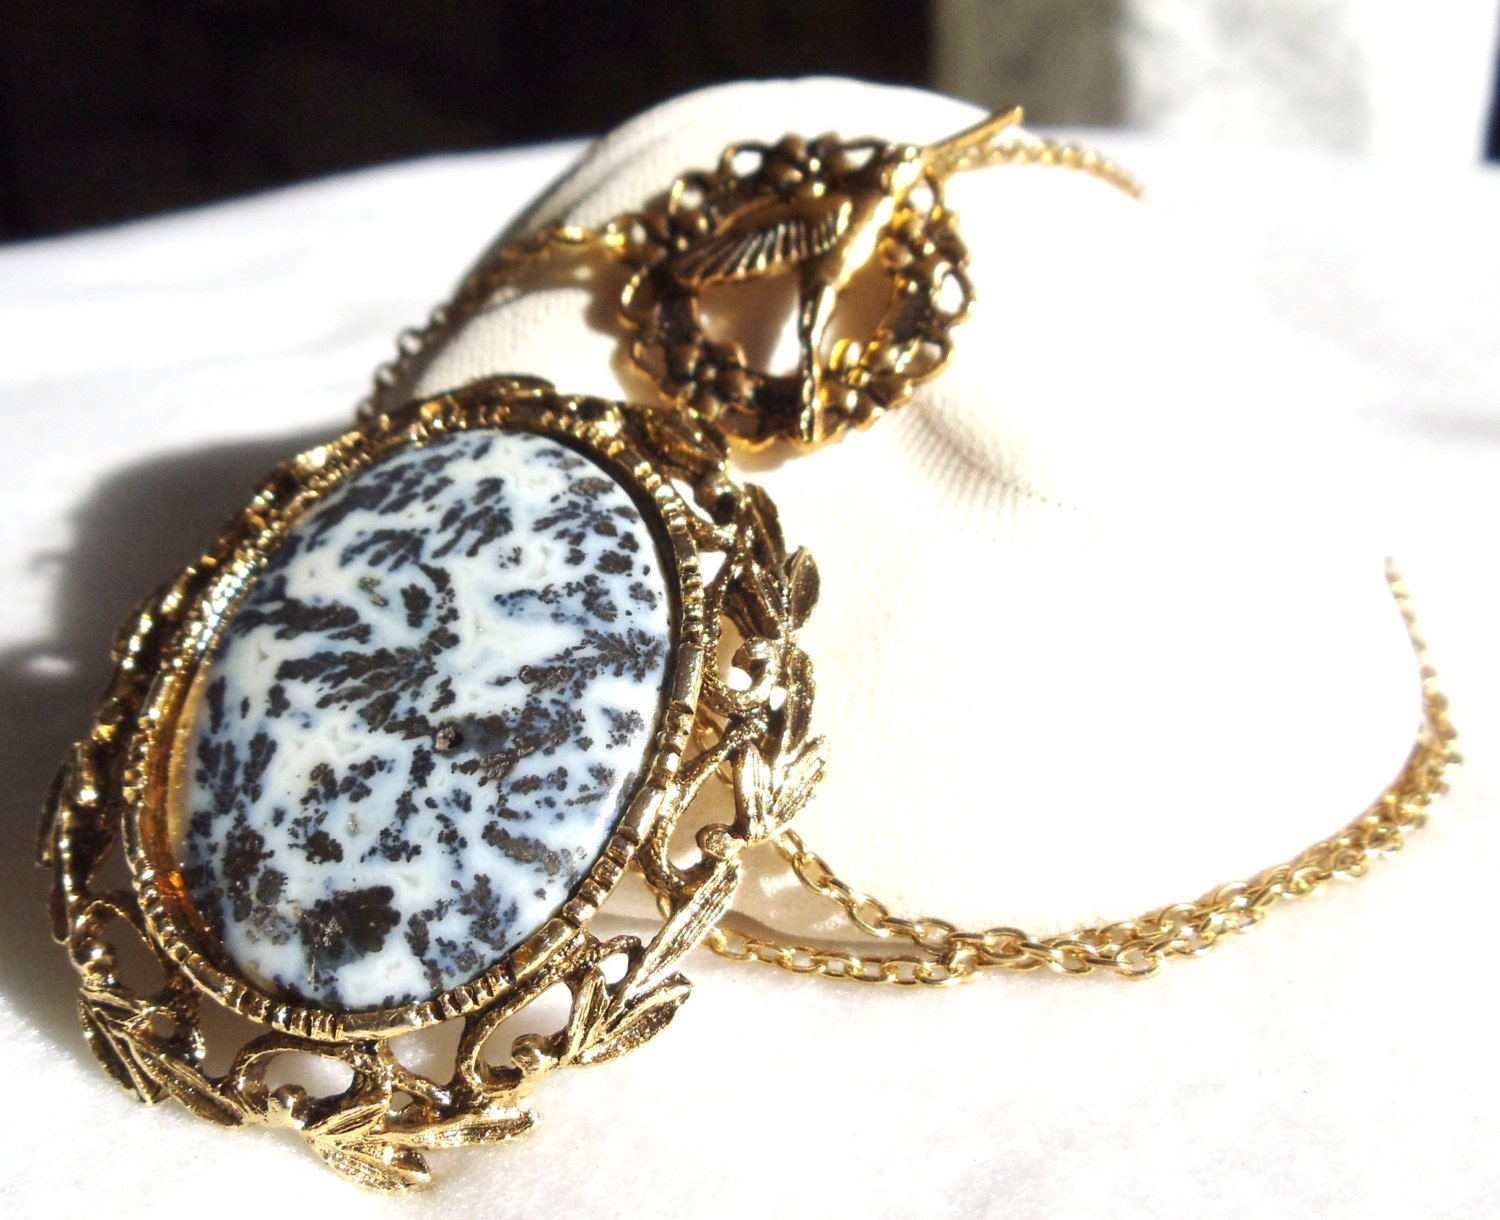 Golden Moss Agate: Moss Agate Pendant Black And White In Gold By